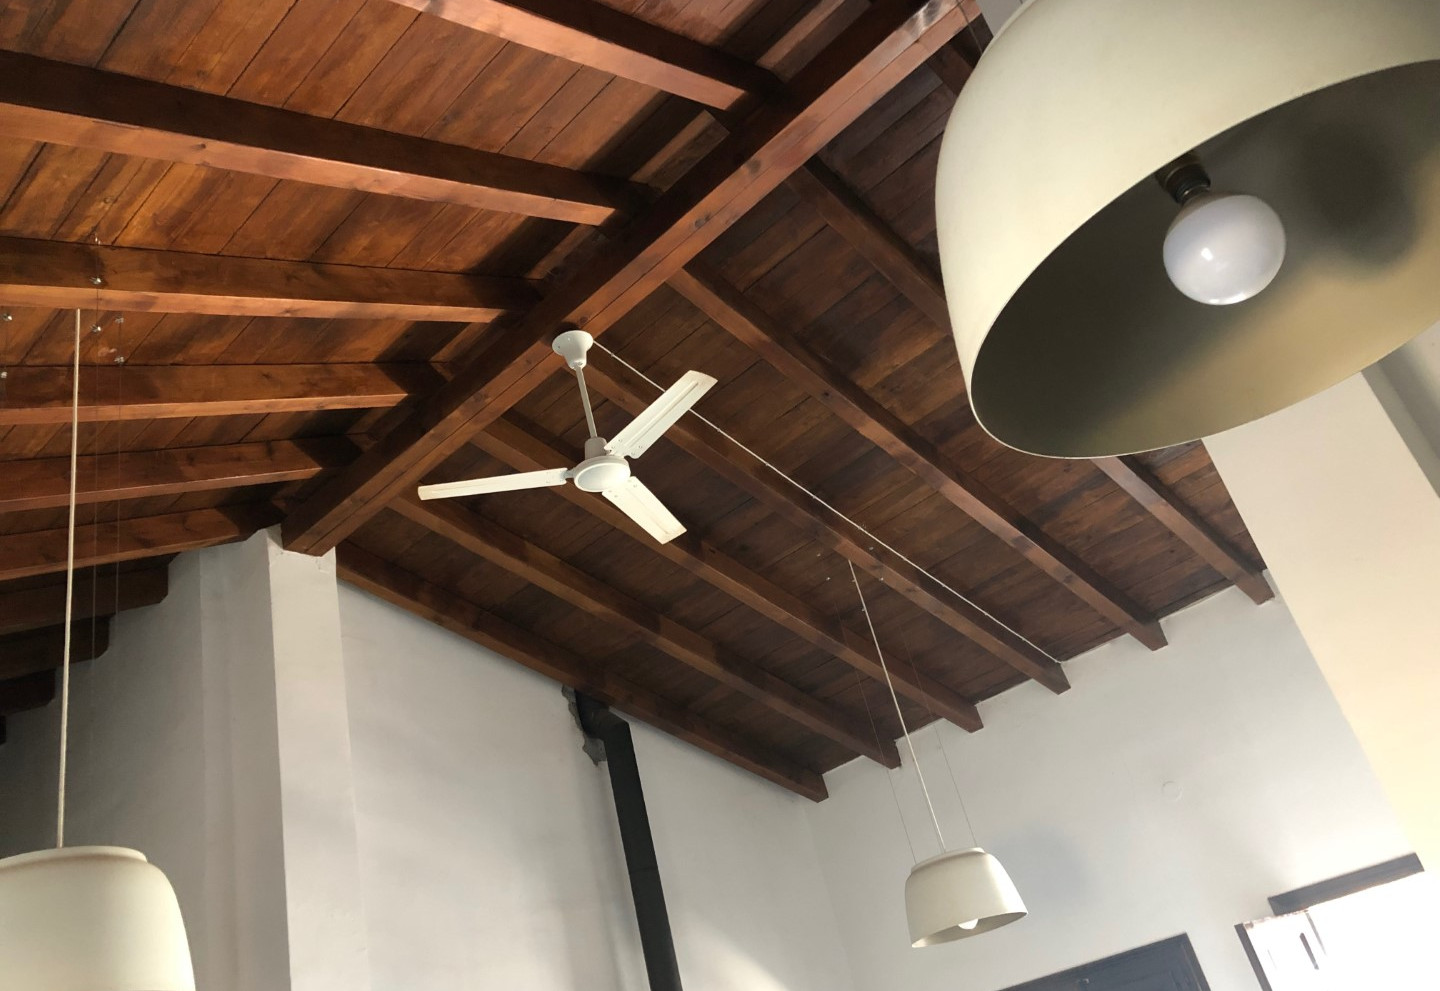 Heigh ceilings with Airco